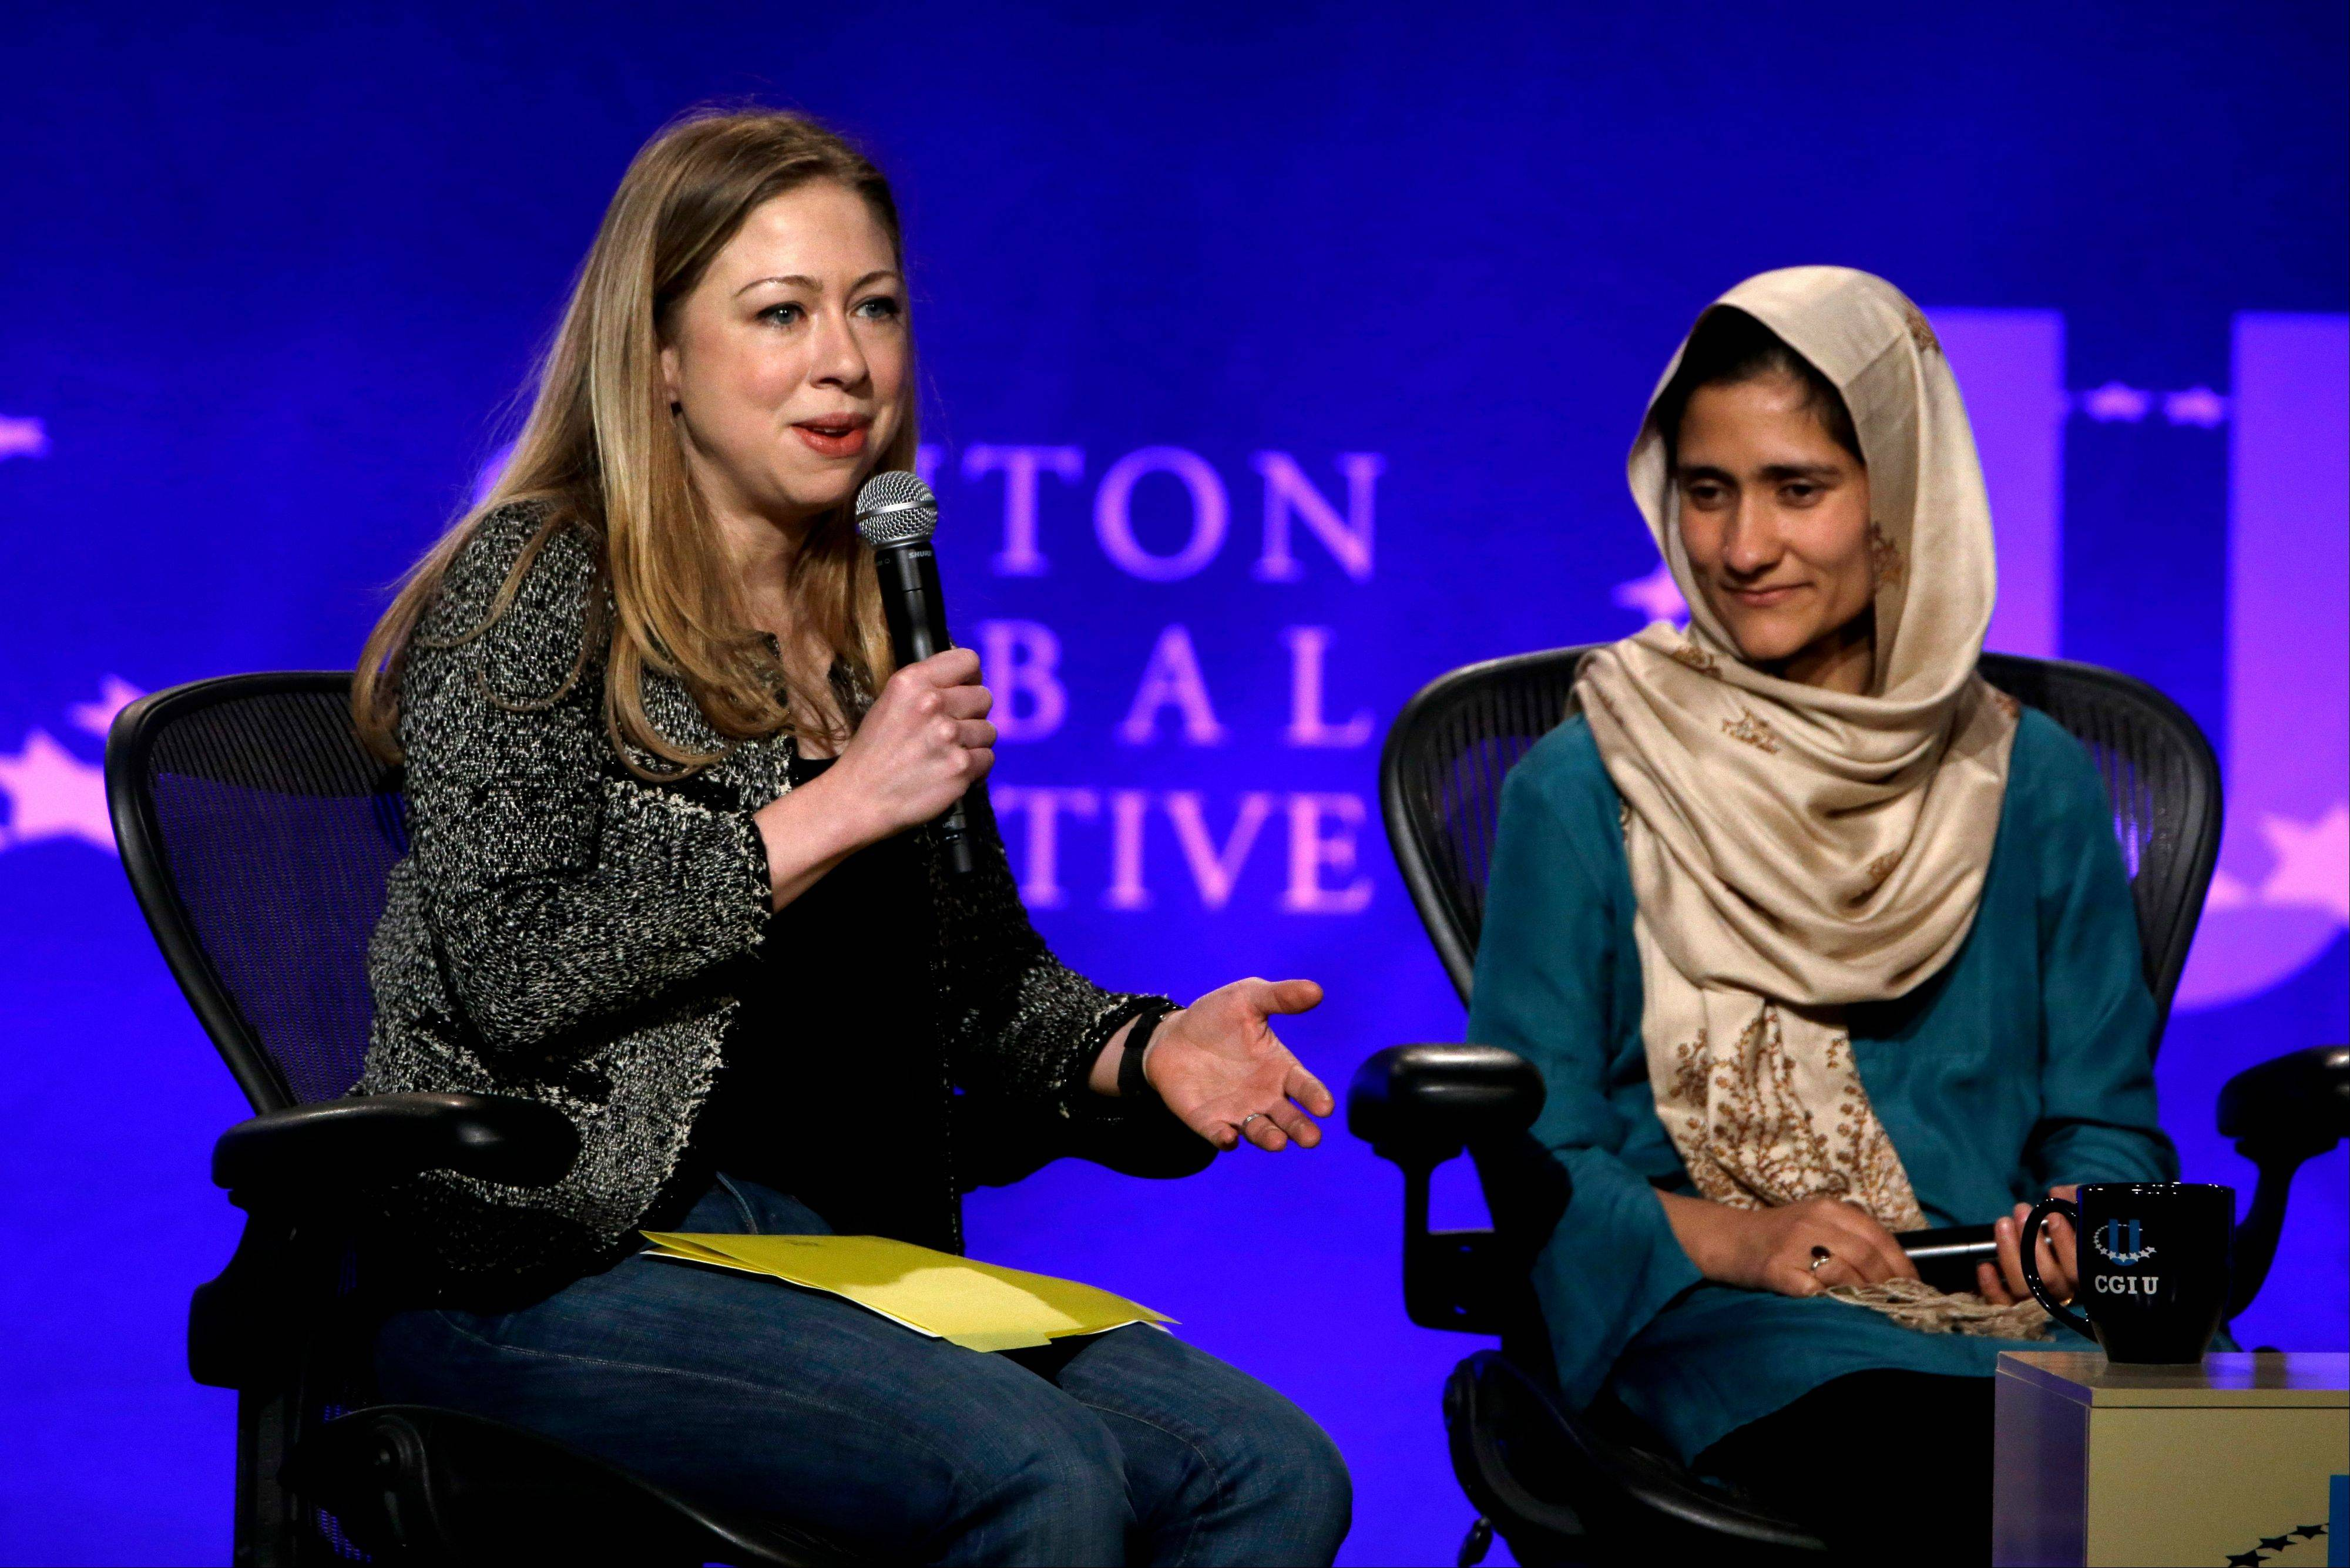 Chelsea Clinton, left, and Shabana Basij-Rasikh, managing director for the School of Leadership in Afghanistan in take part in a discussion on empowering women during the Clinton Global Initiative at Washington University Saturday, April 6, in St. Louis. More than 1,000 university students from 75 countries and all 50 states are gathered for a weekend of sessions seeking practical and innovative solutions to the world's problems.